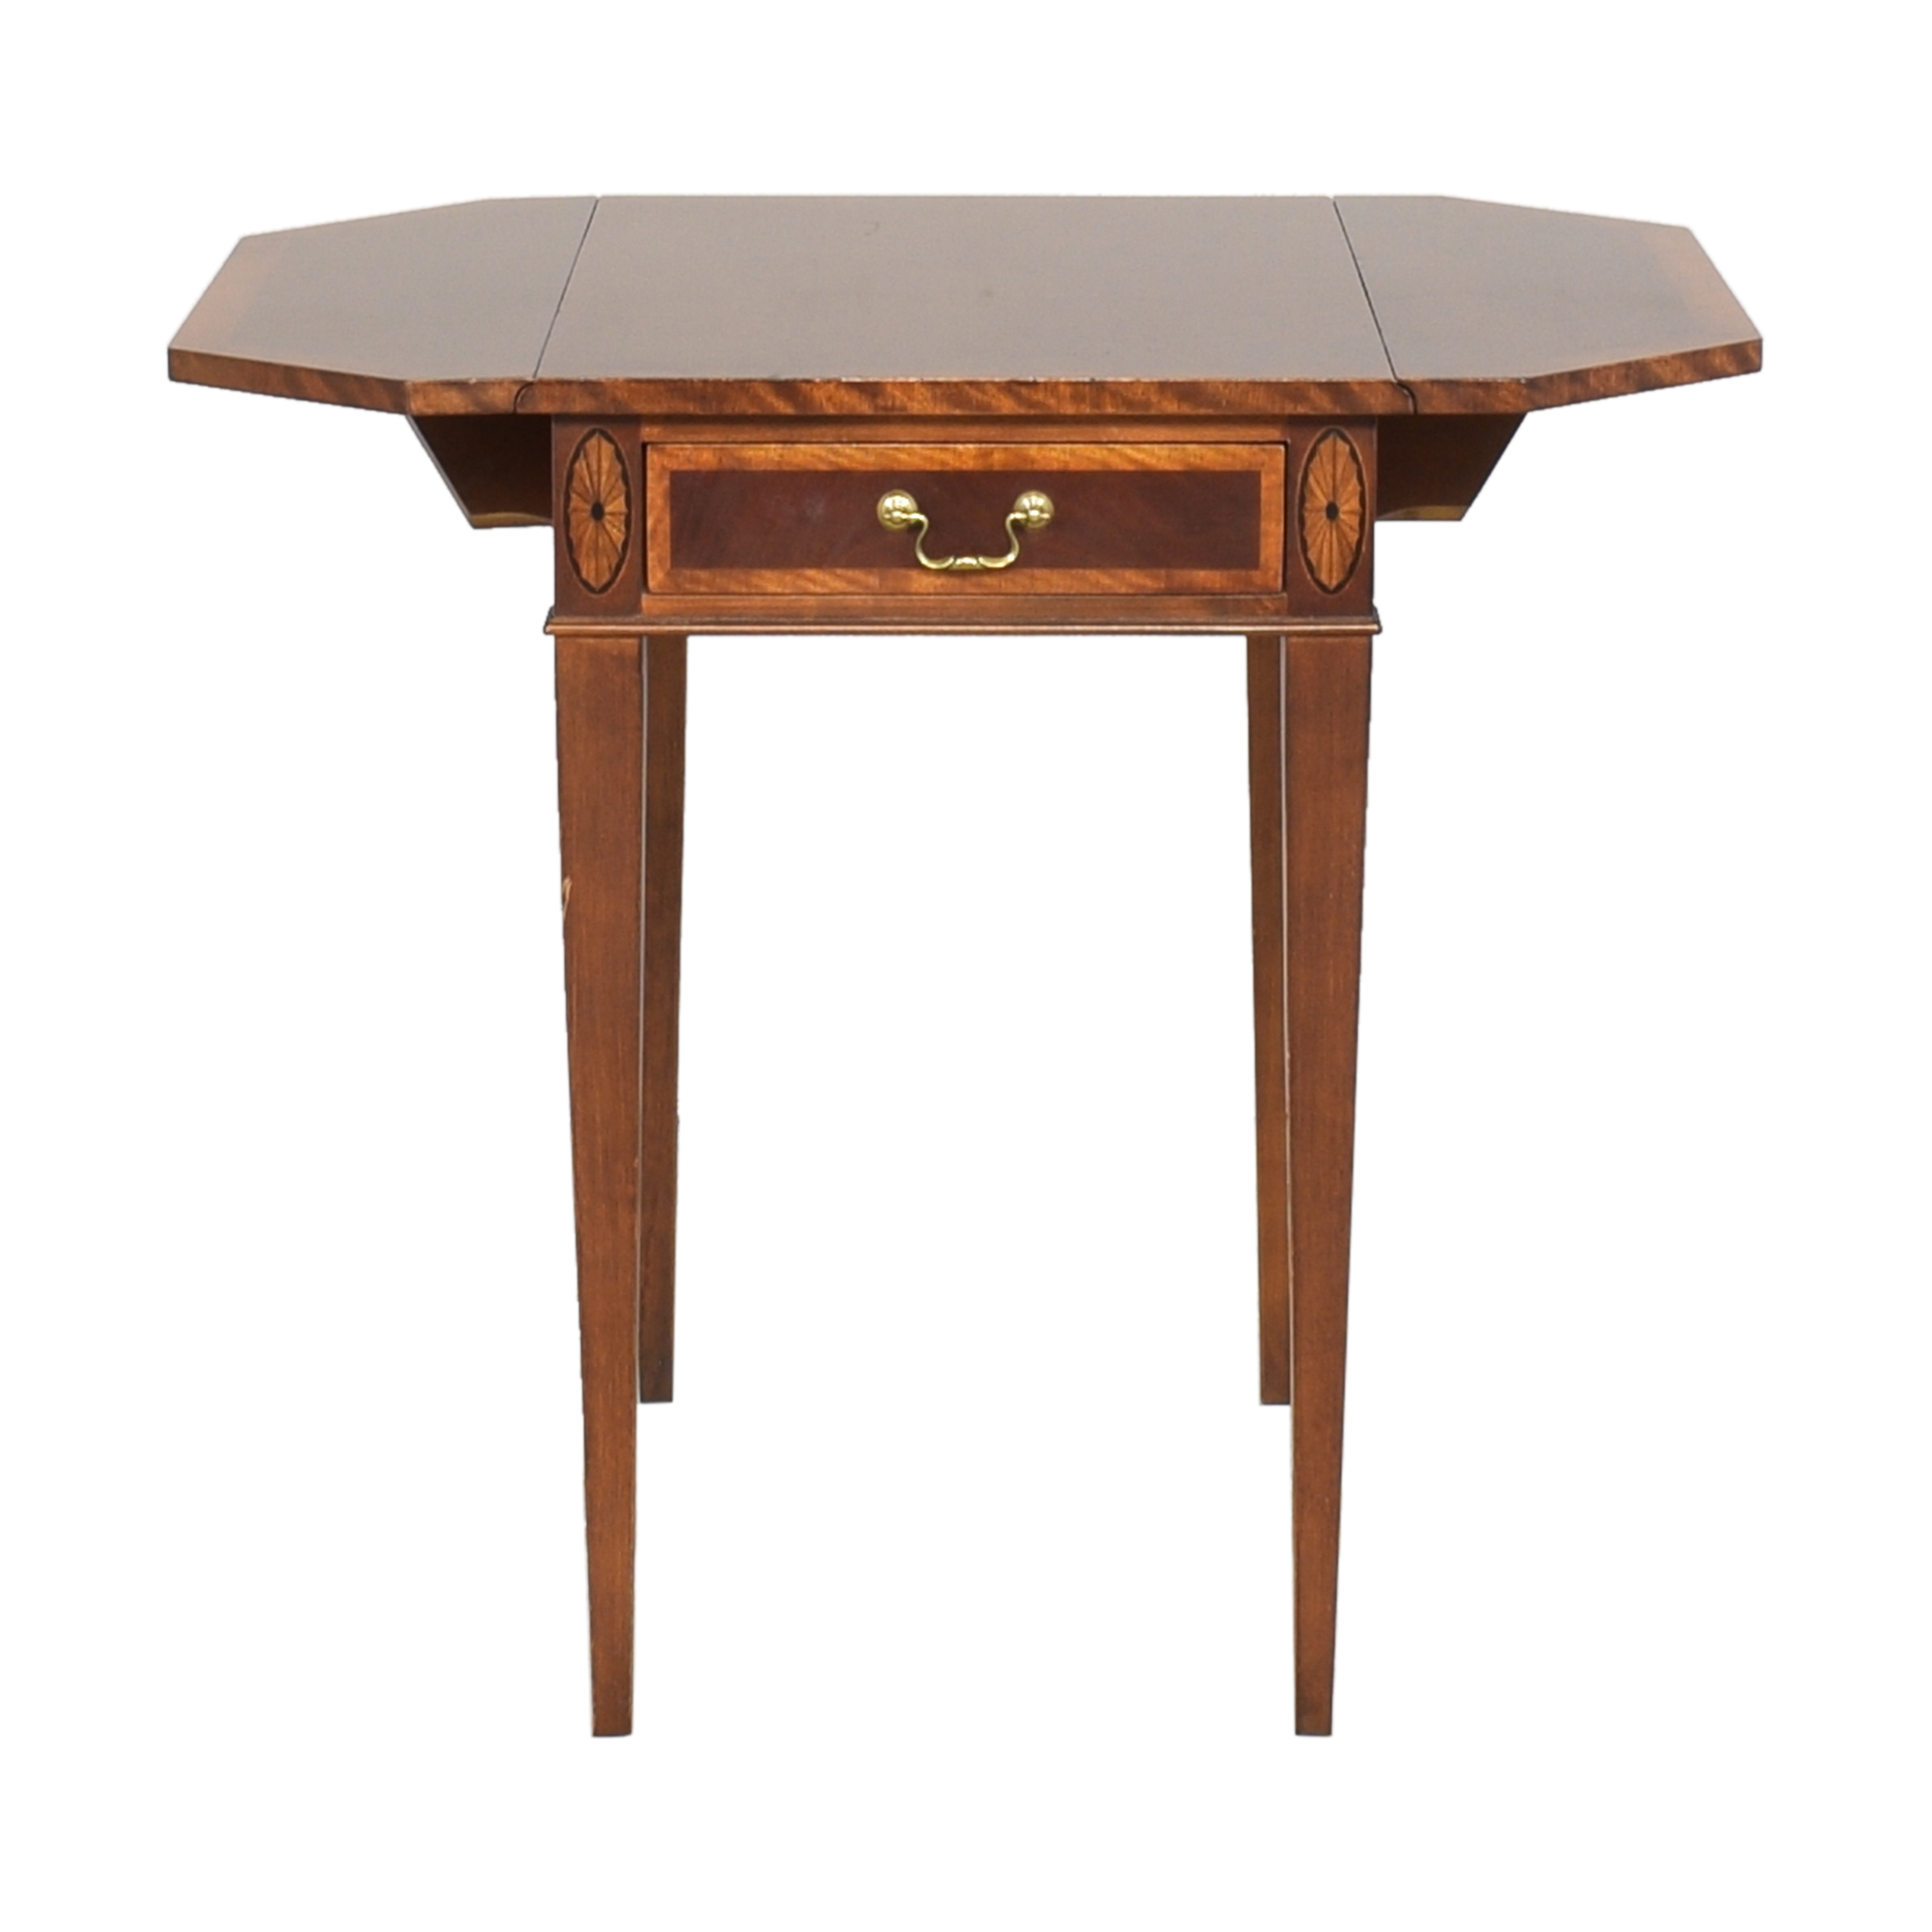 Henredon Furniture Henredon Drop Leaf Accent Table brown